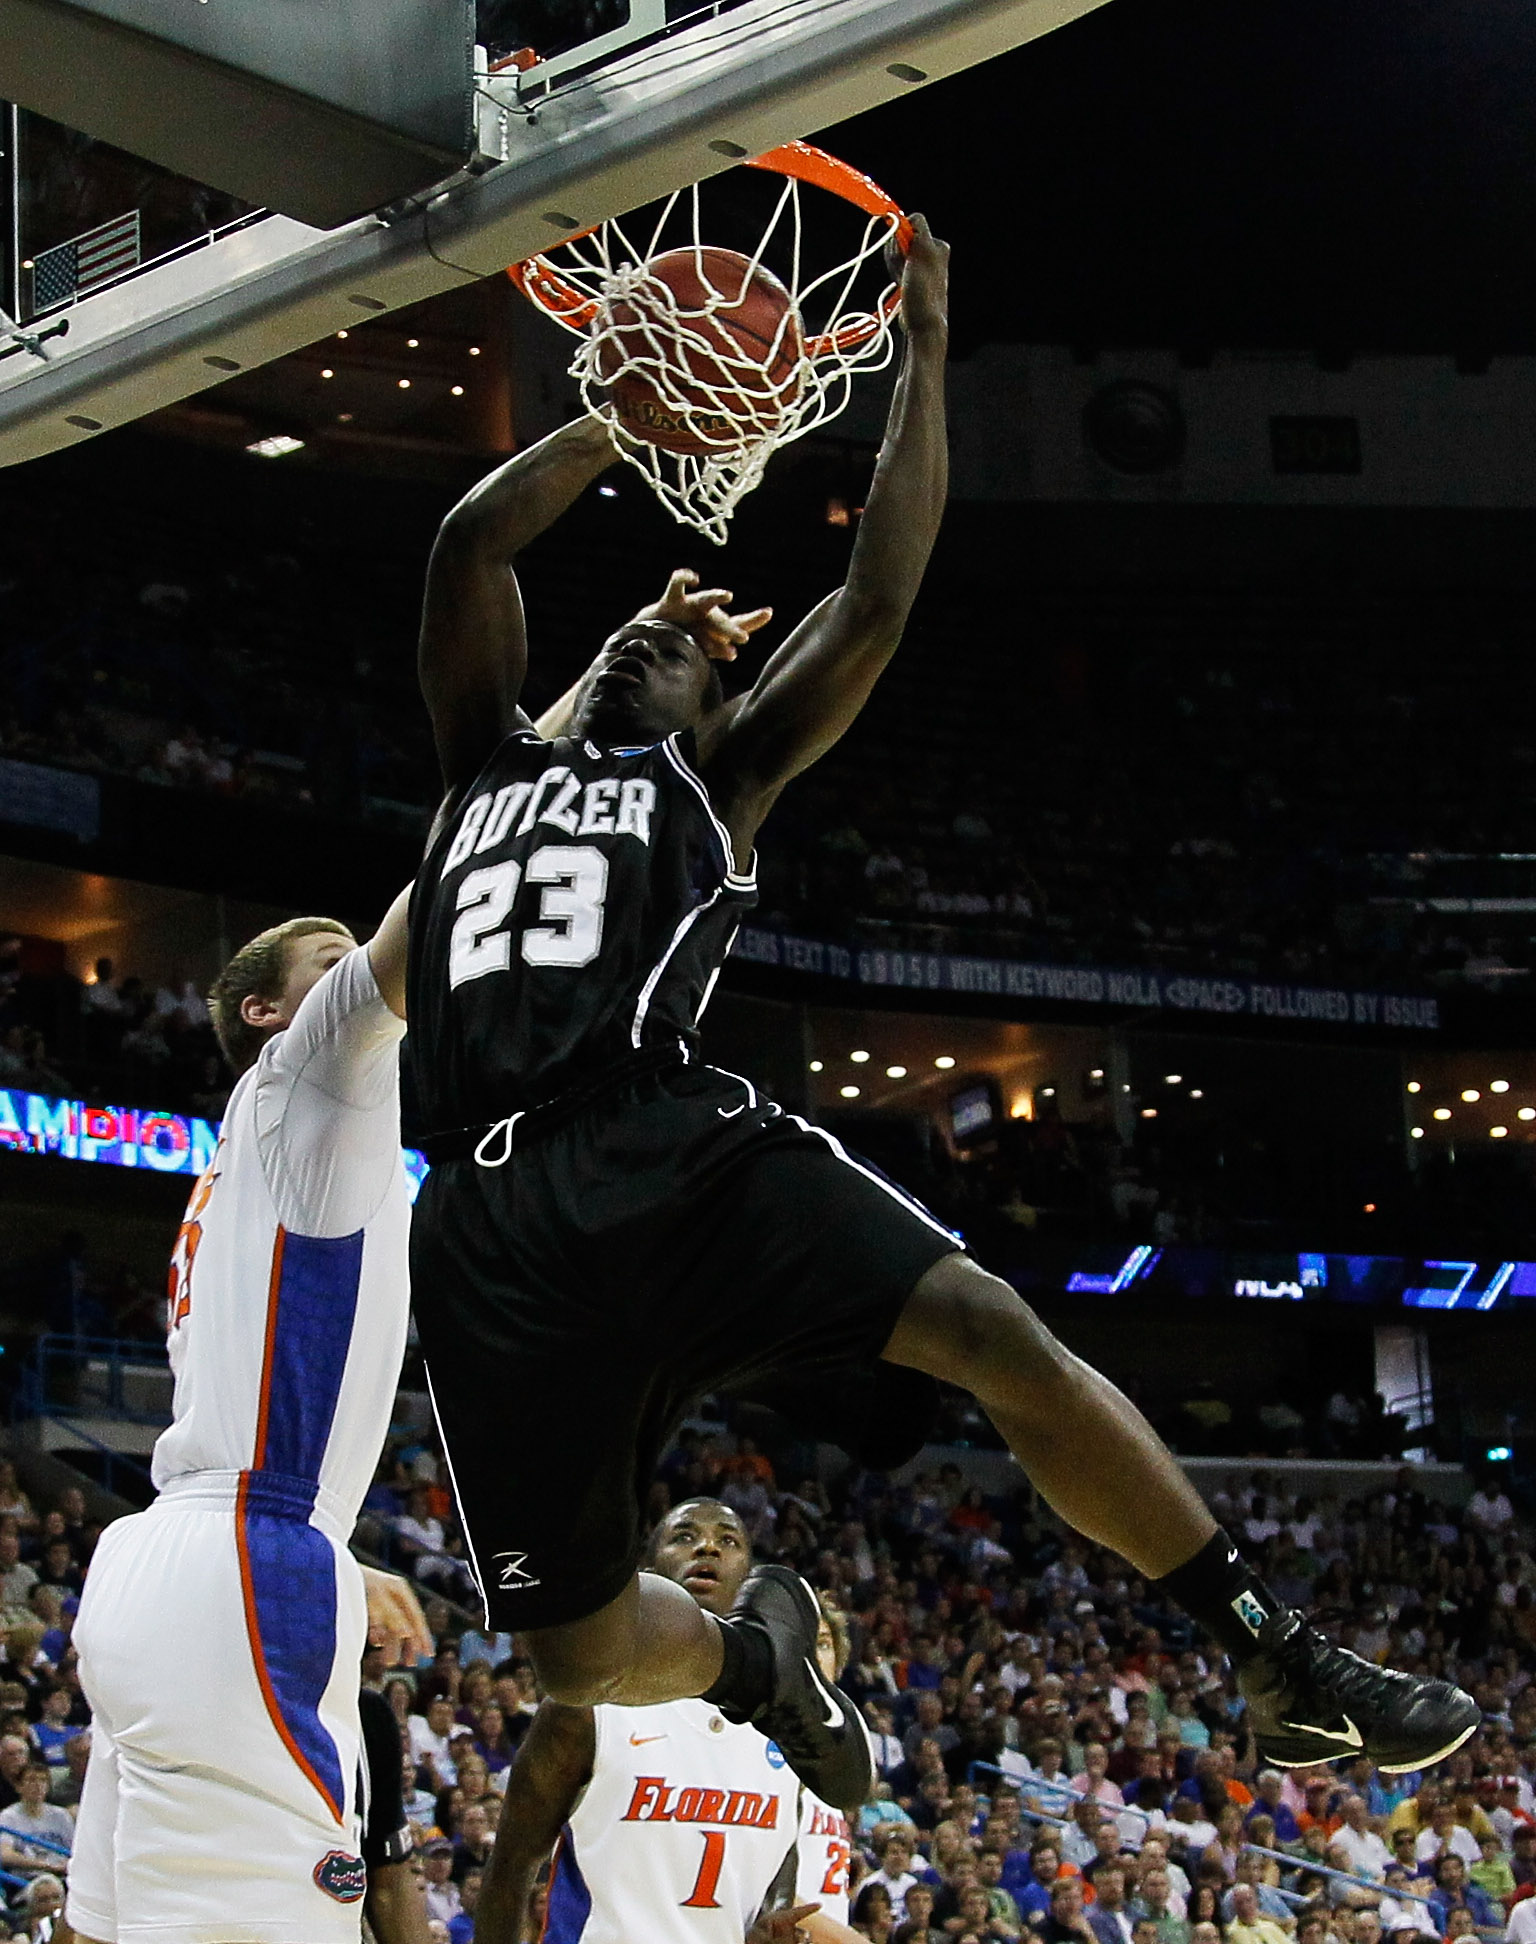 NEW ORLEANS, LA - MARCH 26:  Khyle Marshall #23 of the Butler Bulldogs dunks over Erik Murphy #33 of the Florida Gators in the first half during the Southeast regional final of the 2011 NCAA men's basketball tournament at New Orleans Arena on March 26, 20